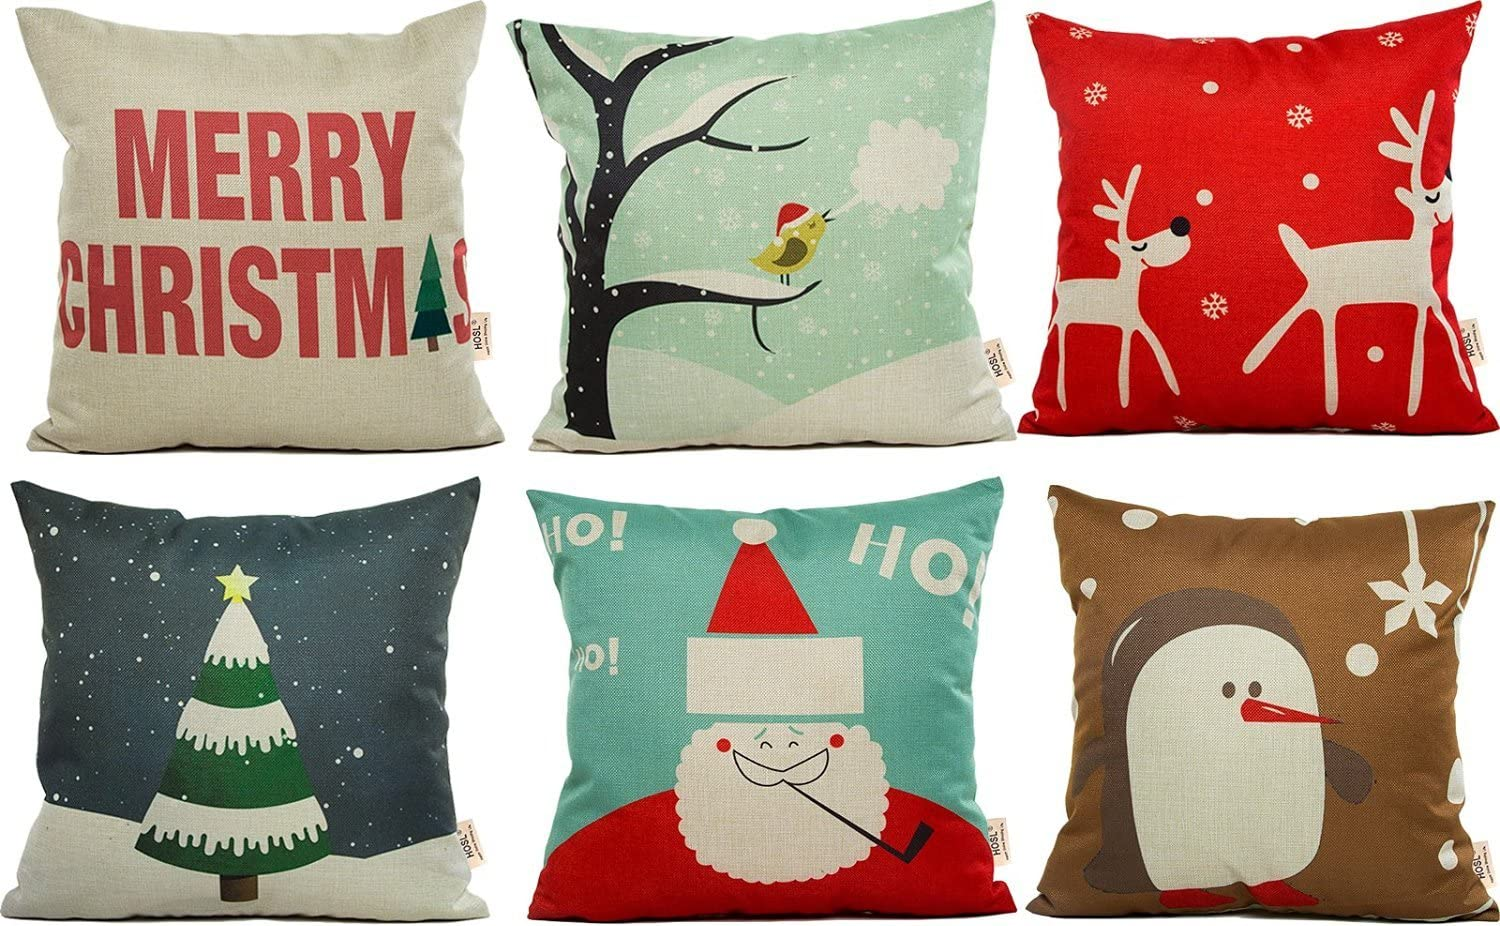 HOSL PSD21 Merry Christmas Cotton Linen Square Decorative Throw Pillow Case Cushion Cover